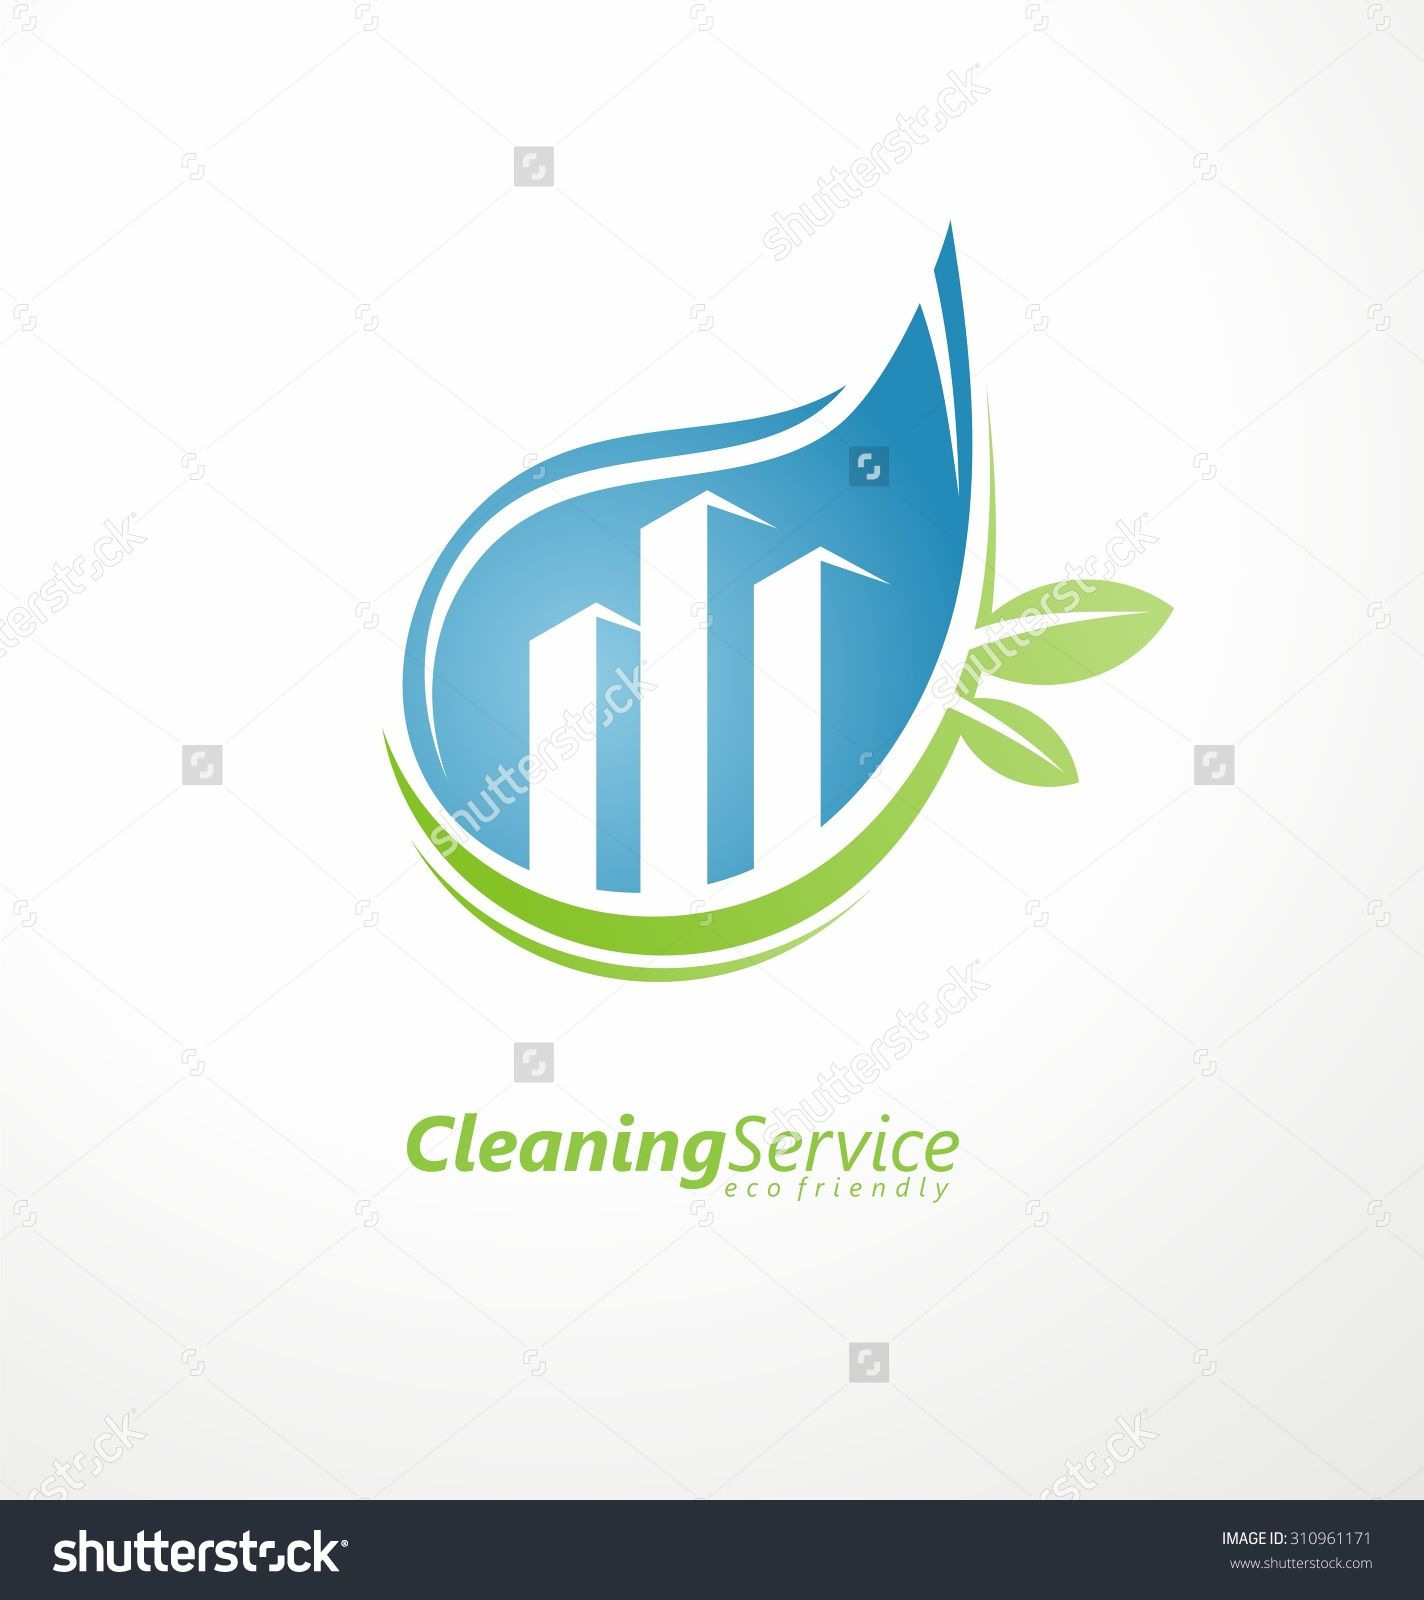 Cleaning Logos Google Search Cleaning Logo Logos Clean House